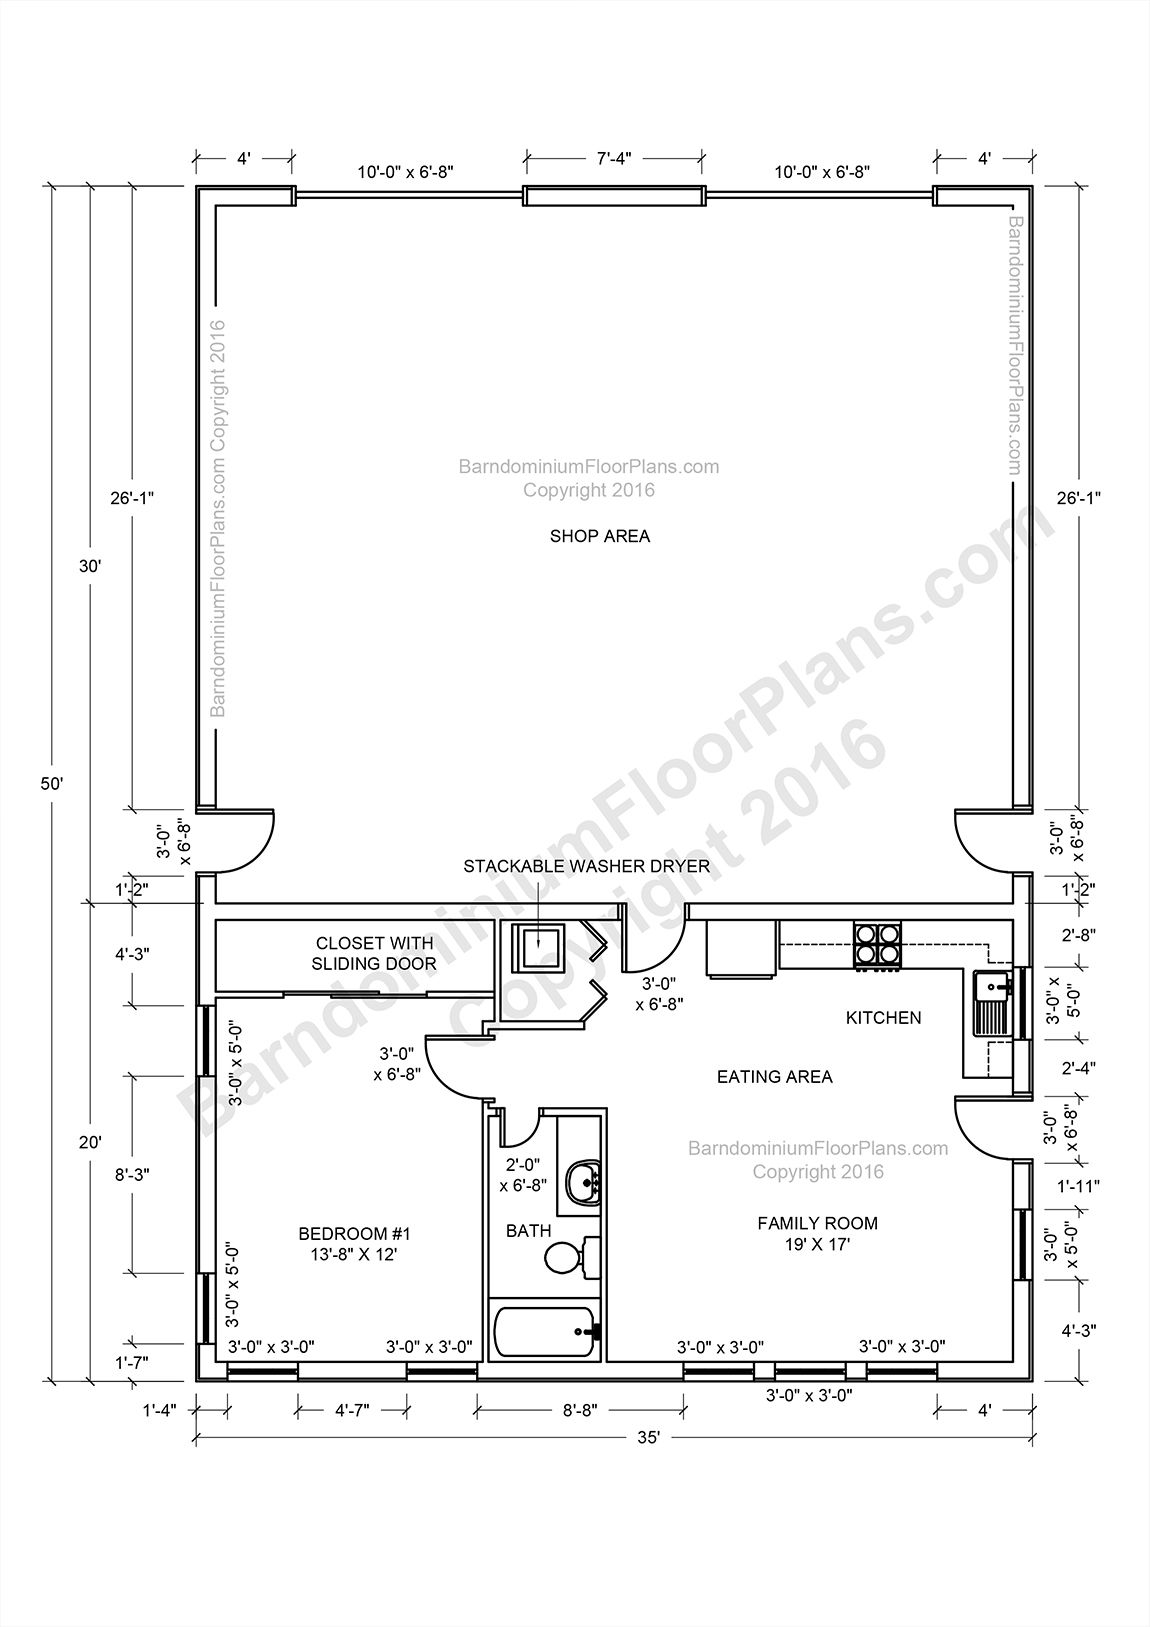 charming house shop plans #10: Barndominium Floor Plans, Pole Barn House Plans and Metal Barn Homes |  Barndominium Floor Plans